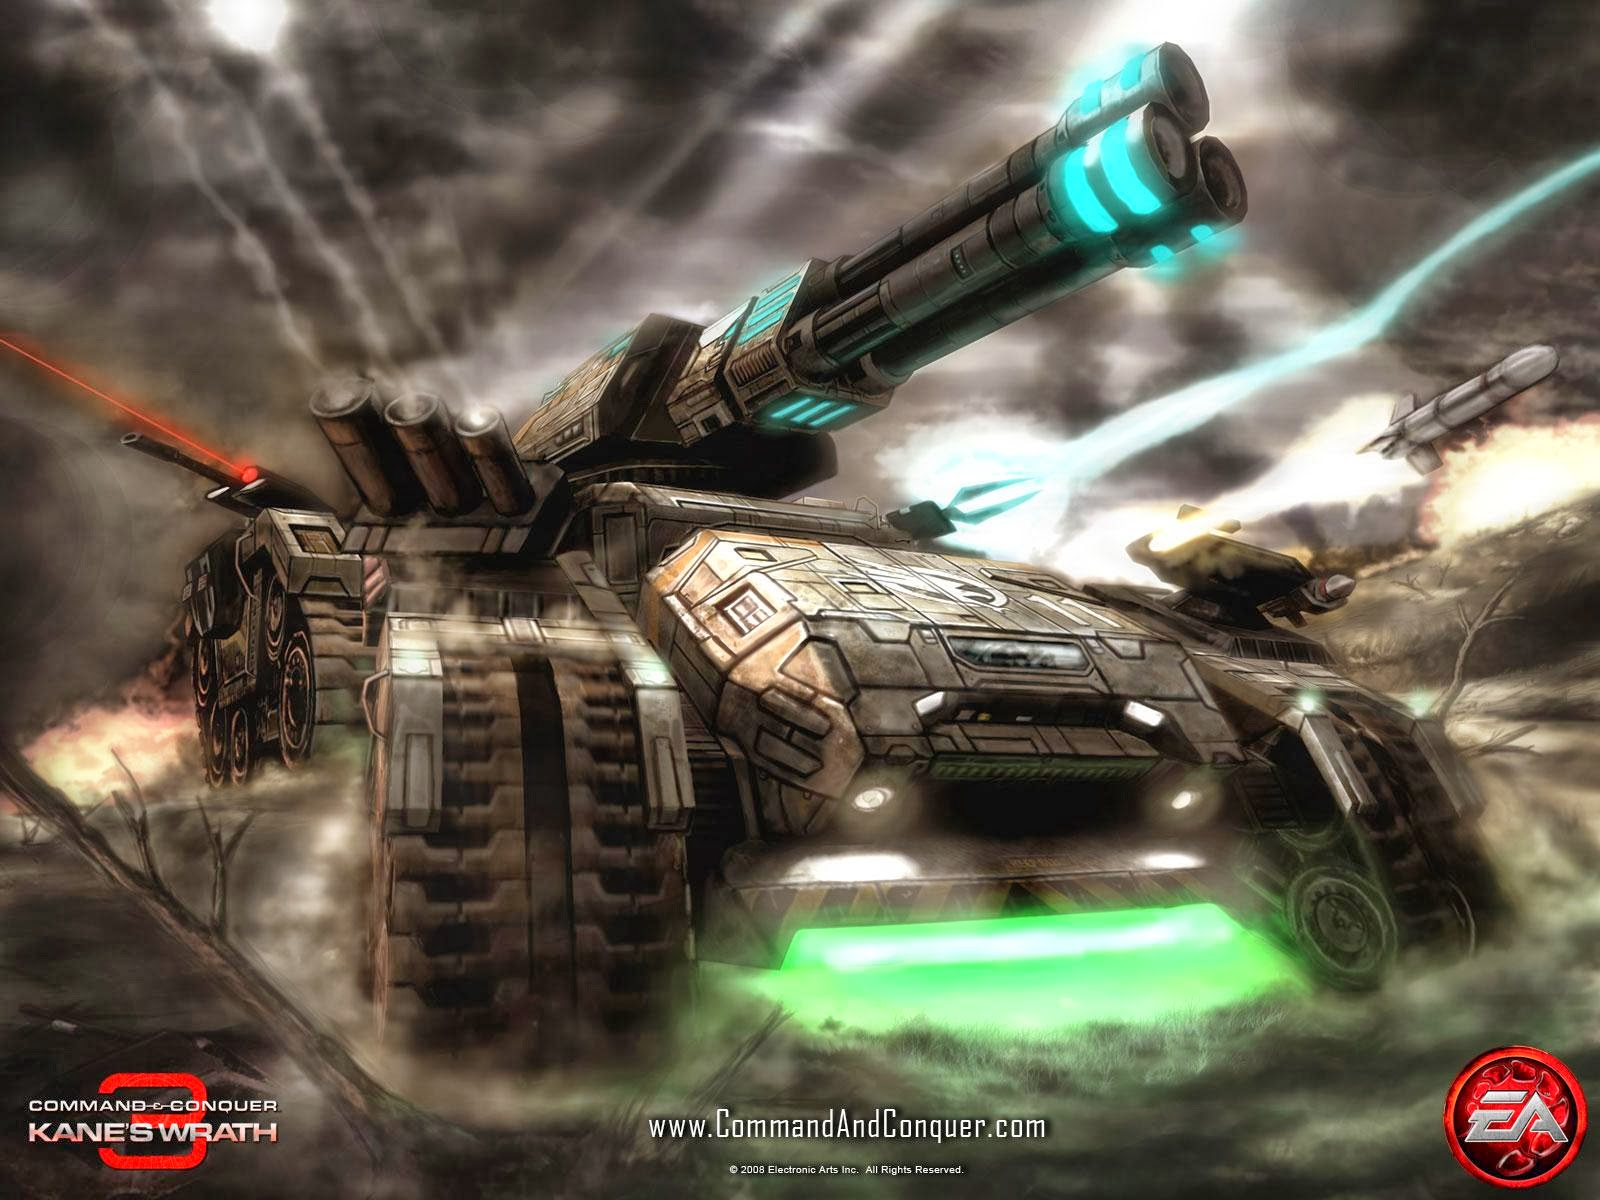 Command and Conquer: Generals Zero Hour Free Download